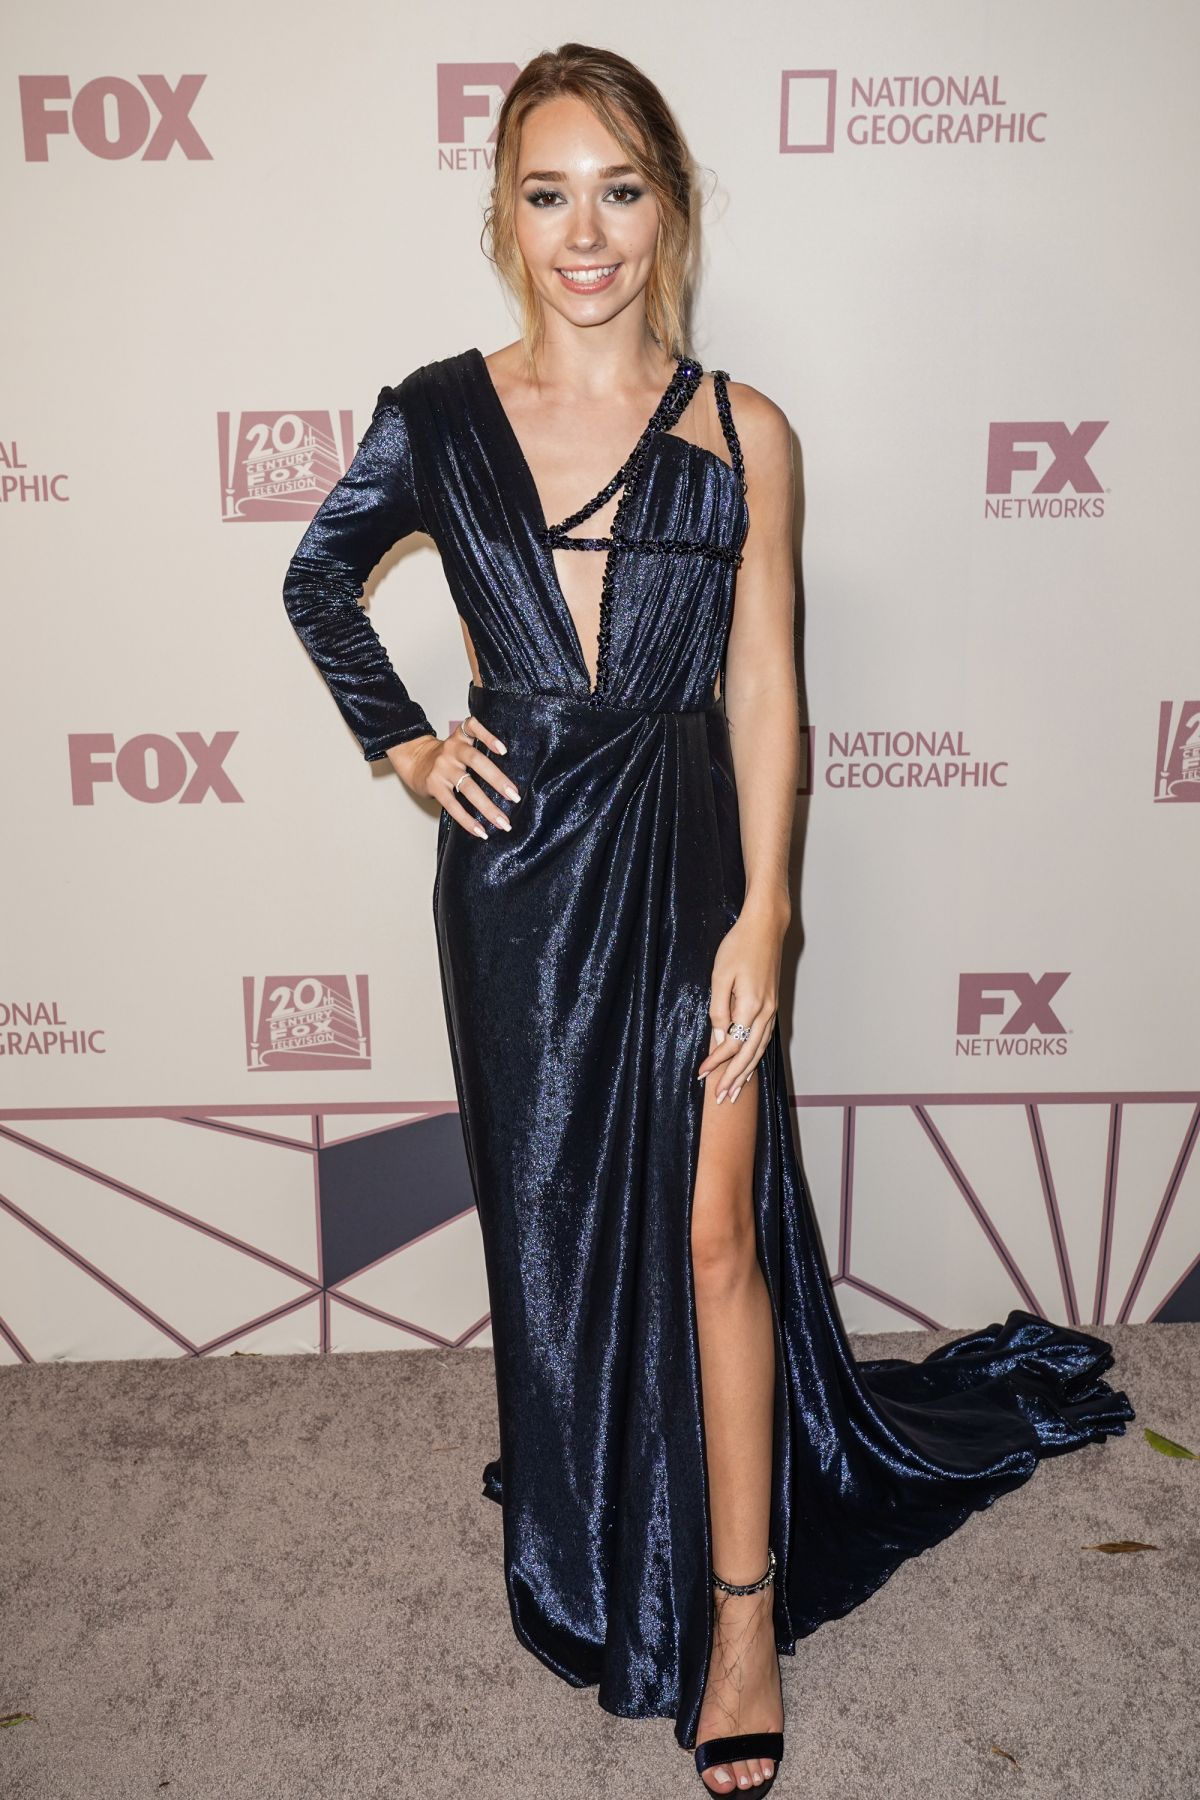 HOLLY TAYLOR at Fox Emmy Awards Party in Los Angeles 09/17/2018 - HawtCelebs